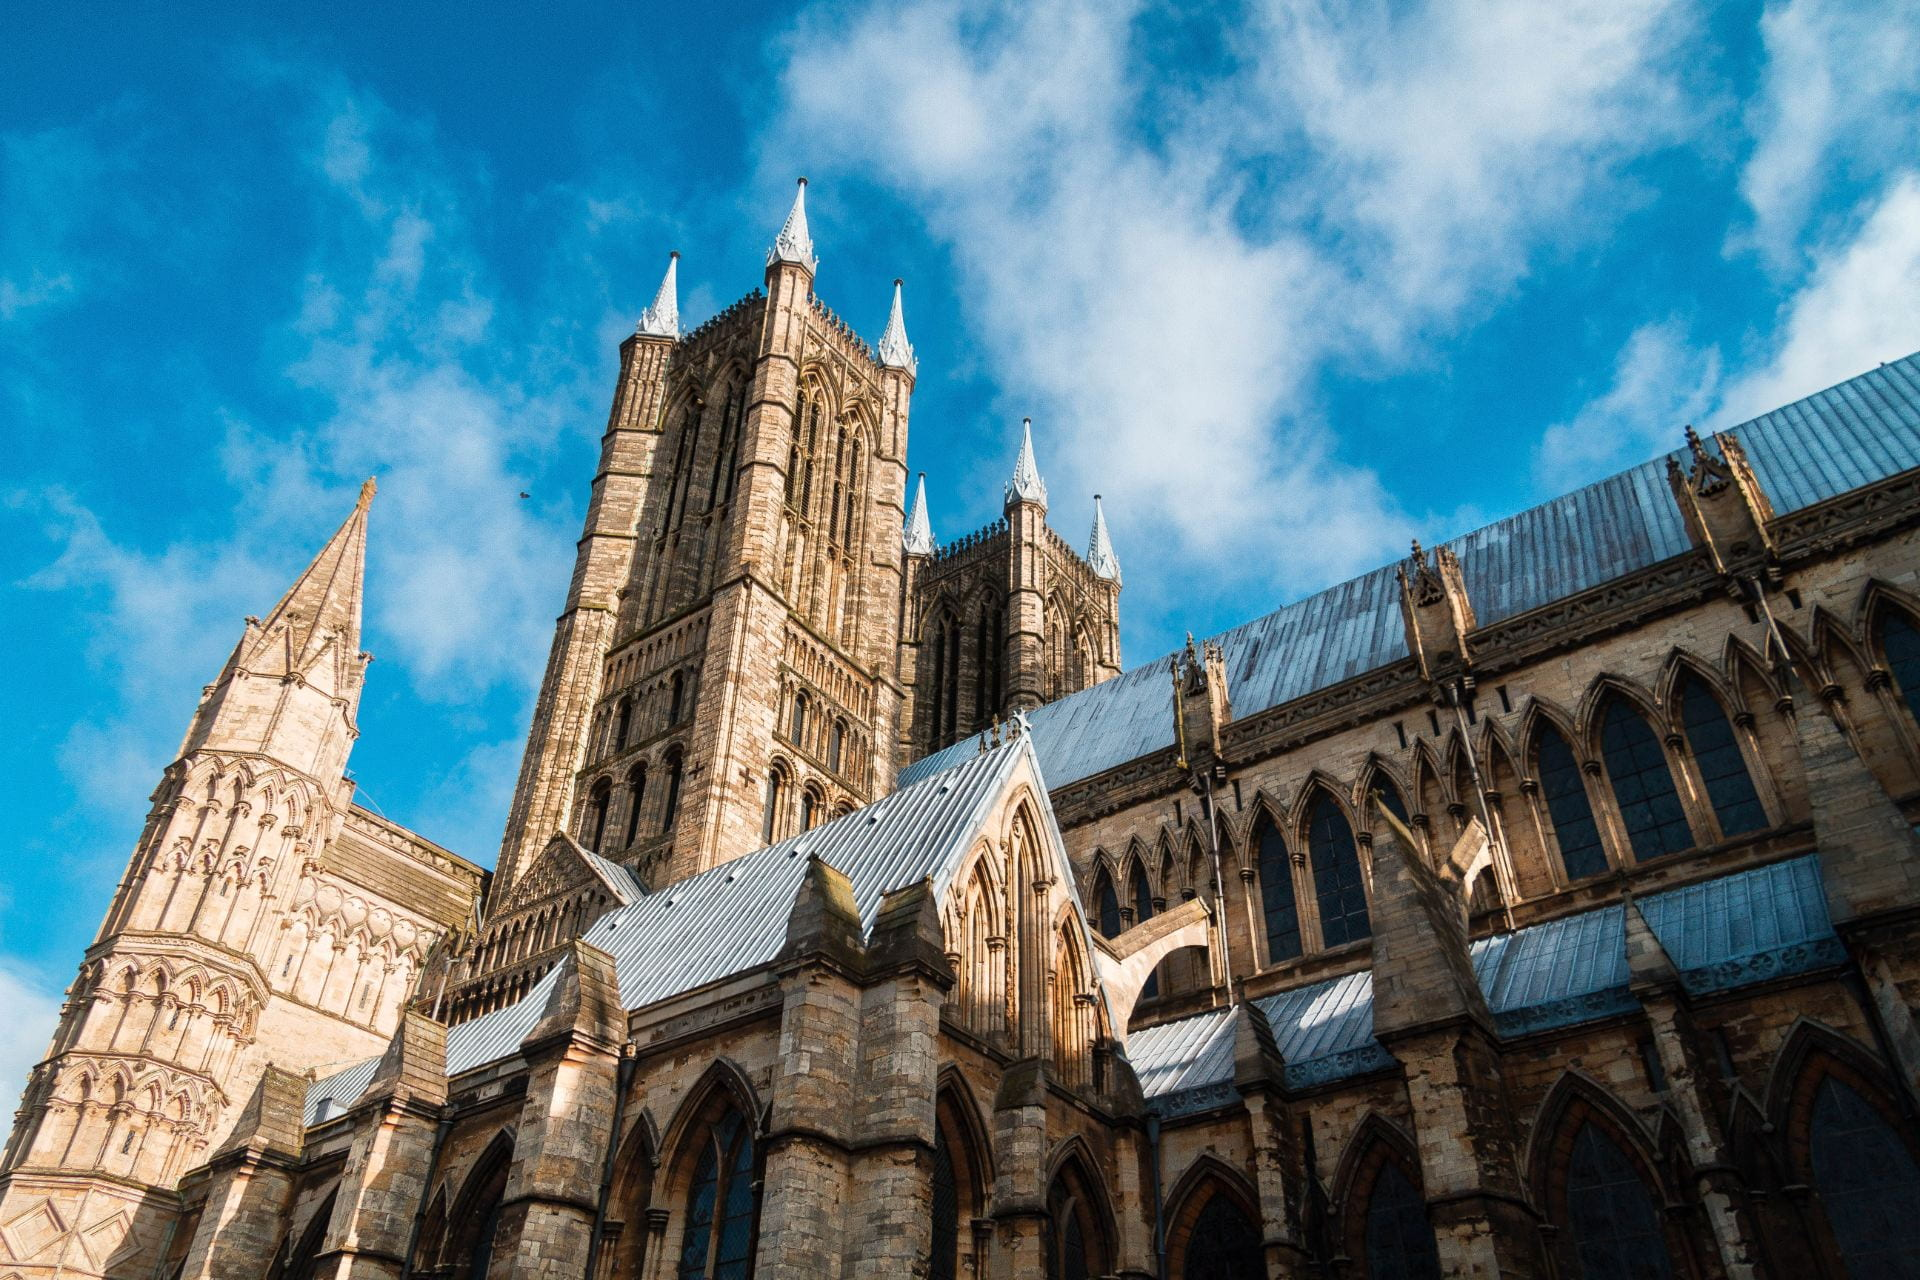 Lincoln cathedral, blue skies above it. With a few clouds in the sky.